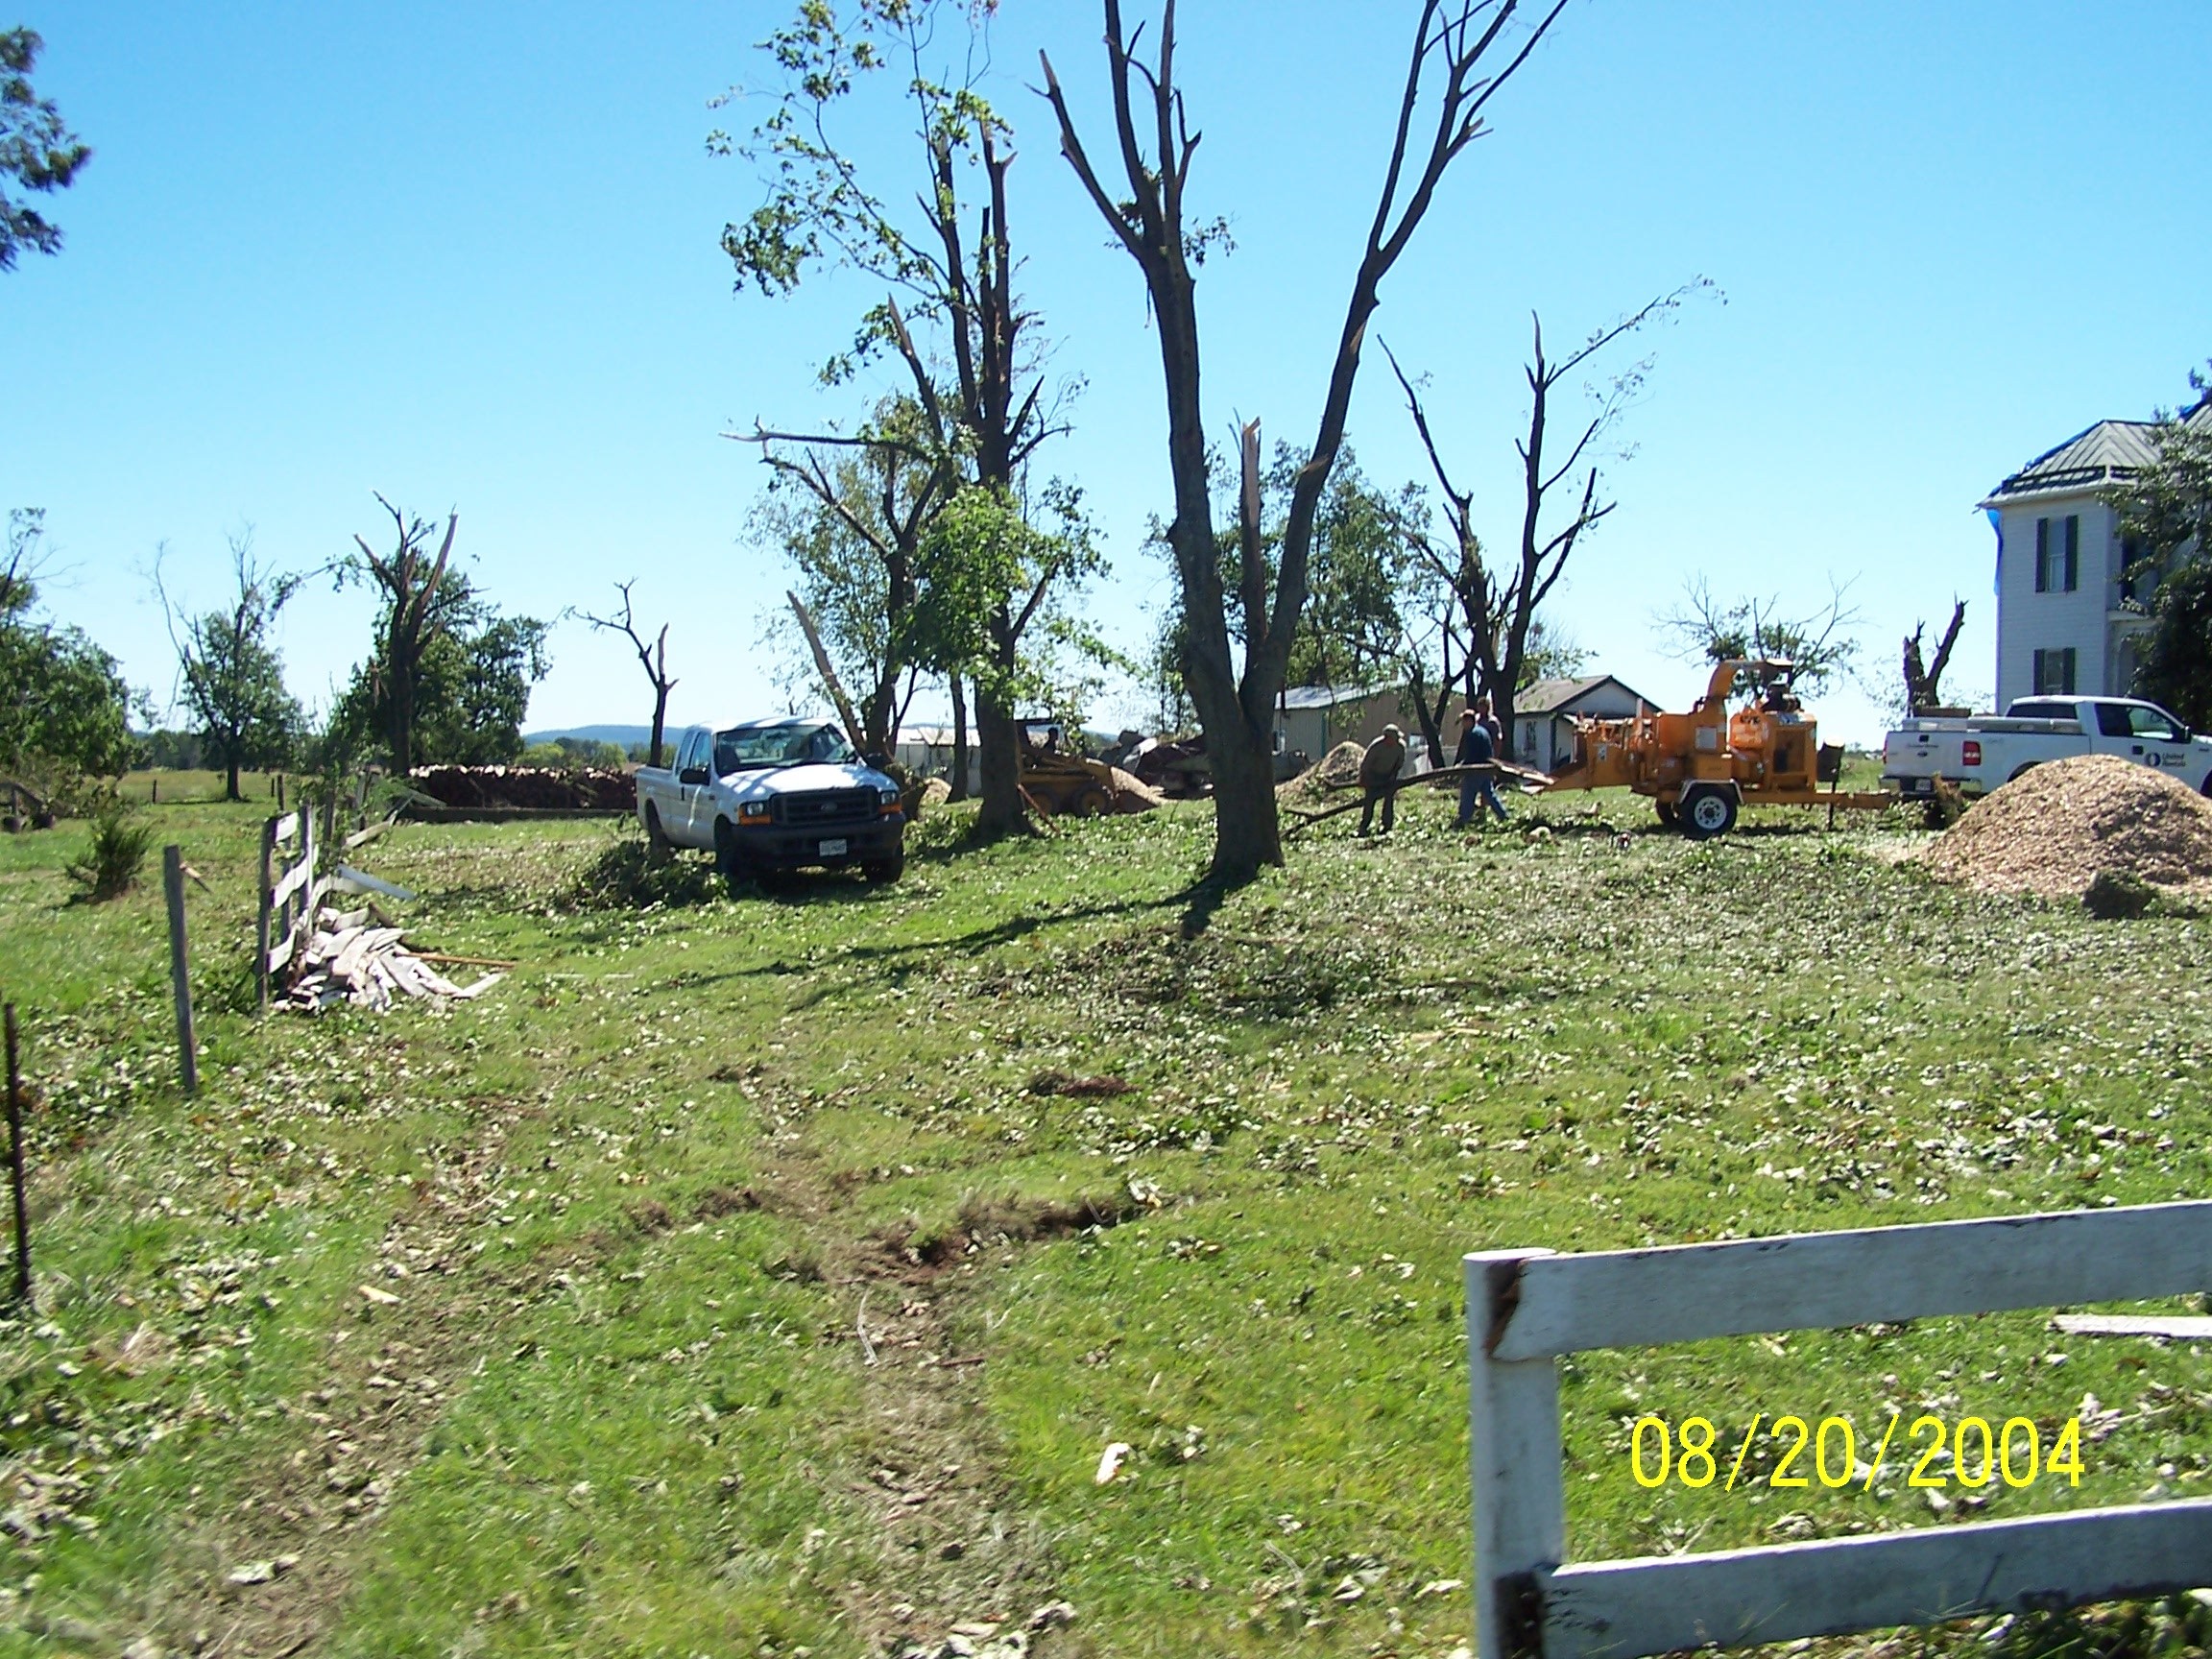 /images/lwx/sept17tornadoes/FrederickMD_Picture2.jpg